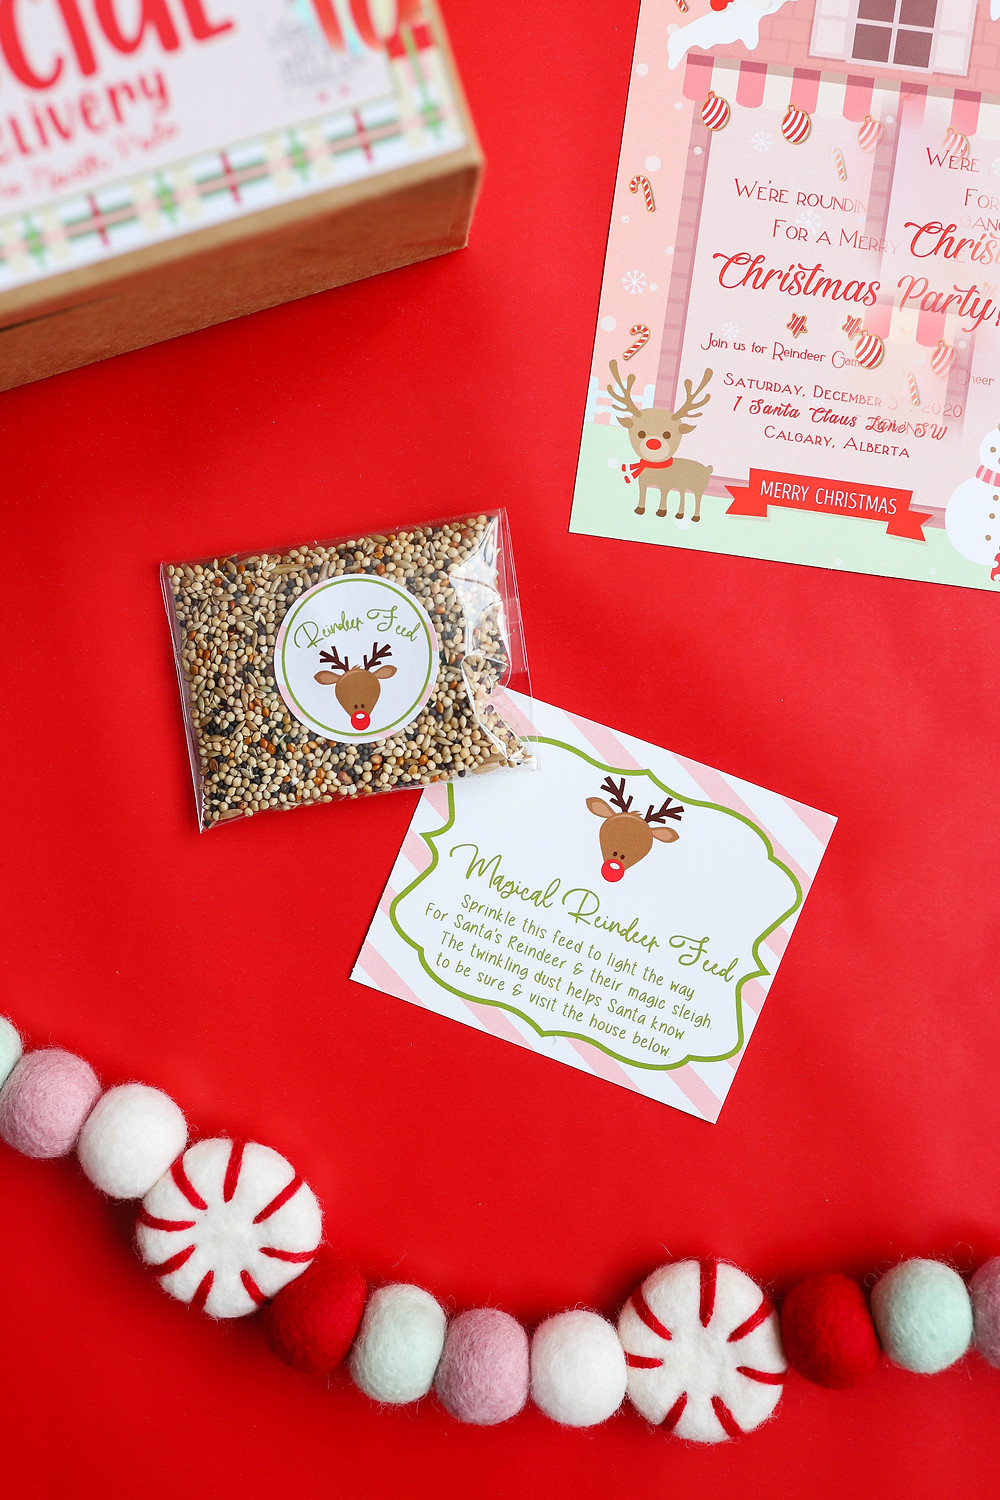 A kids christmas holiday party planned with balloons, cookie decorating, DIY decor and magical printables.